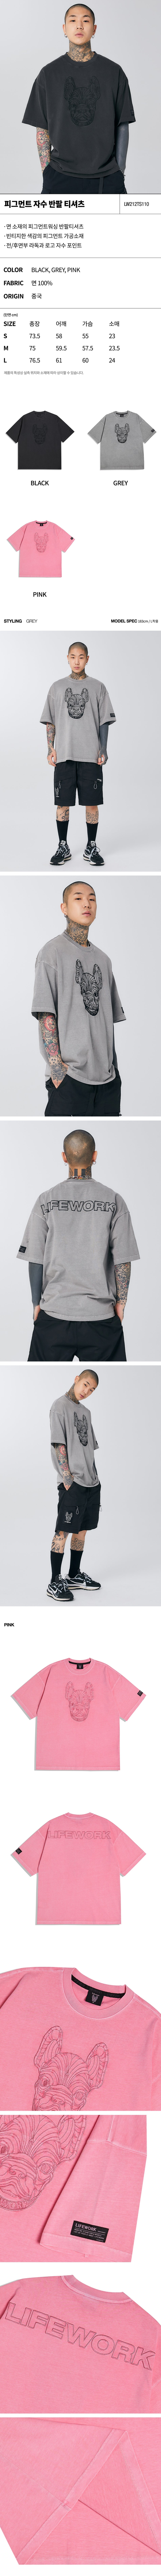 Pigmented Embroidered Short Sleeve T-shirt